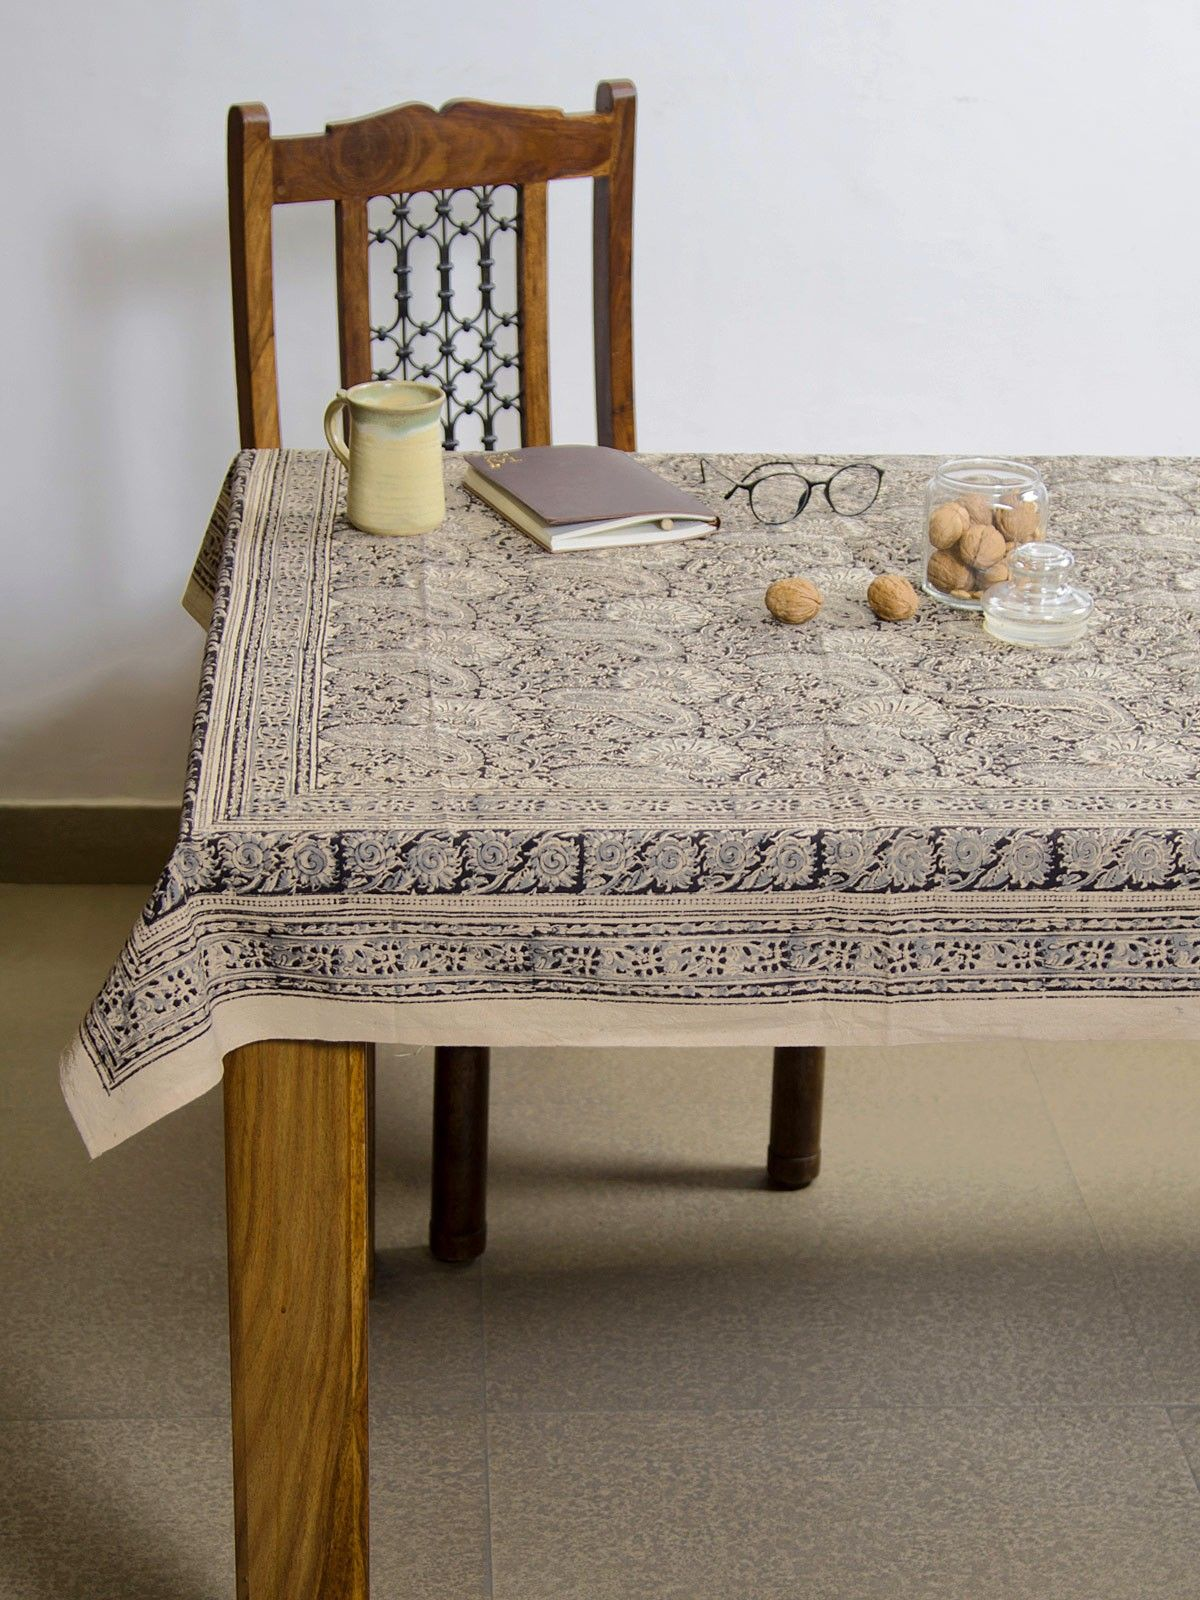 Porcelain Amra Kalamkari 6 seater table cover